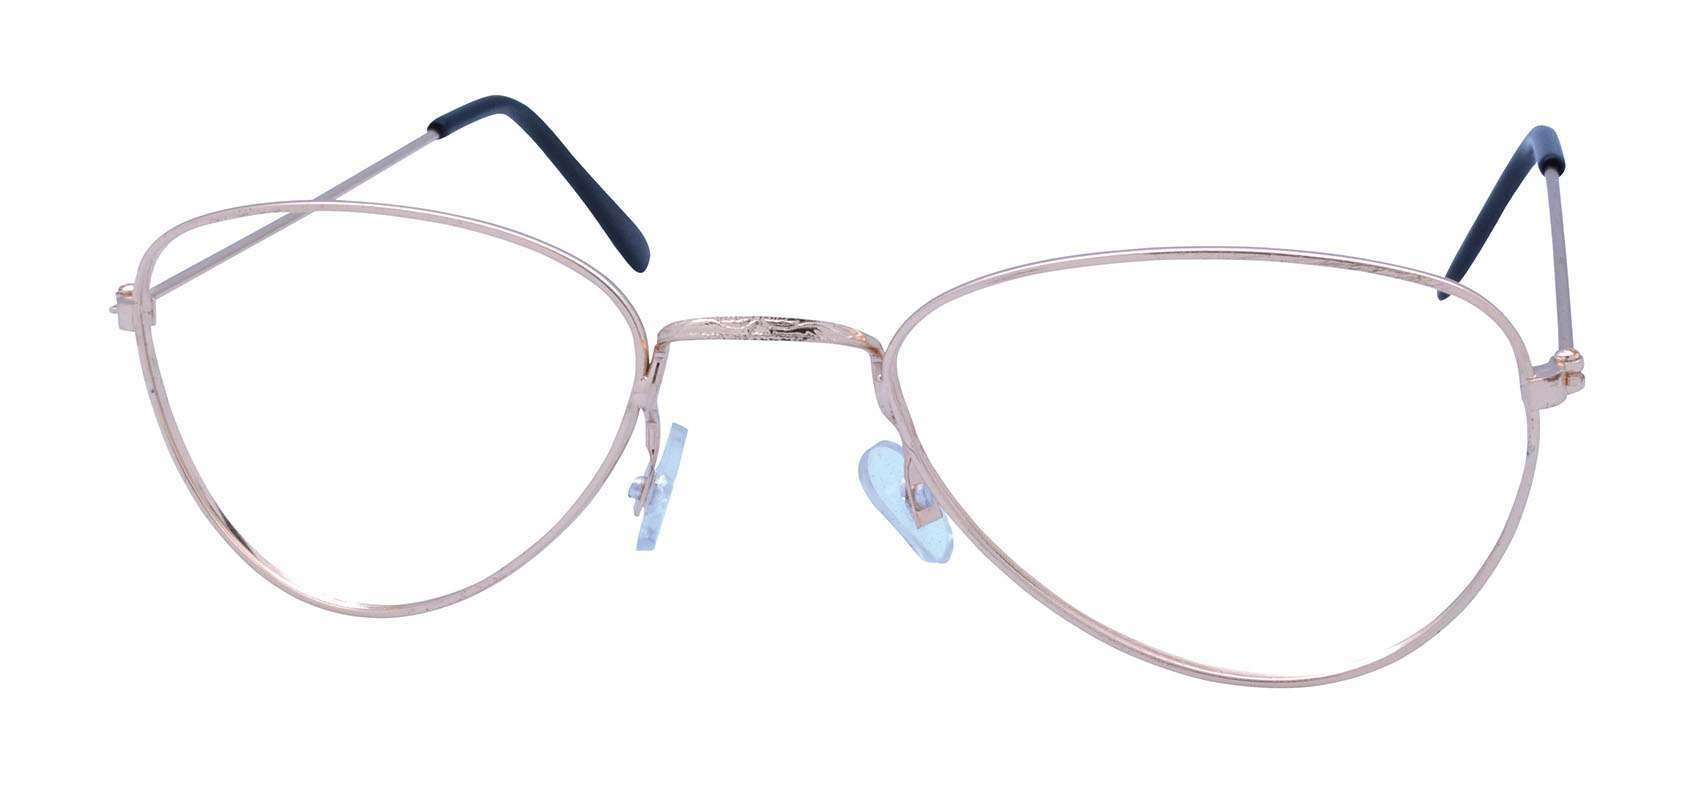 Novelty Old Lady Glasses (No Lens)